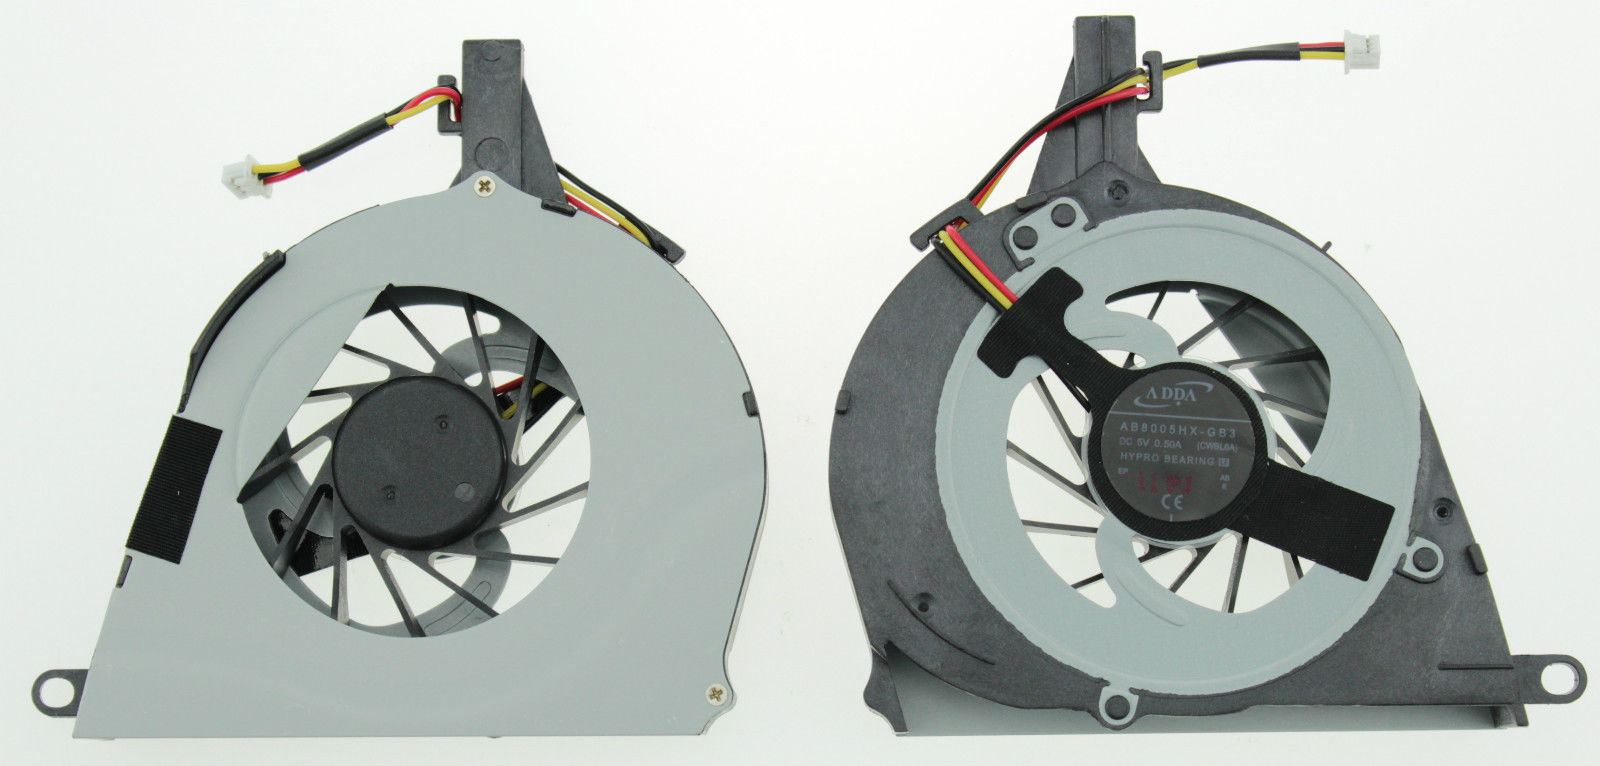 Toshiba Satellite L650d Replacement Laptop Cpu Cooling Fan